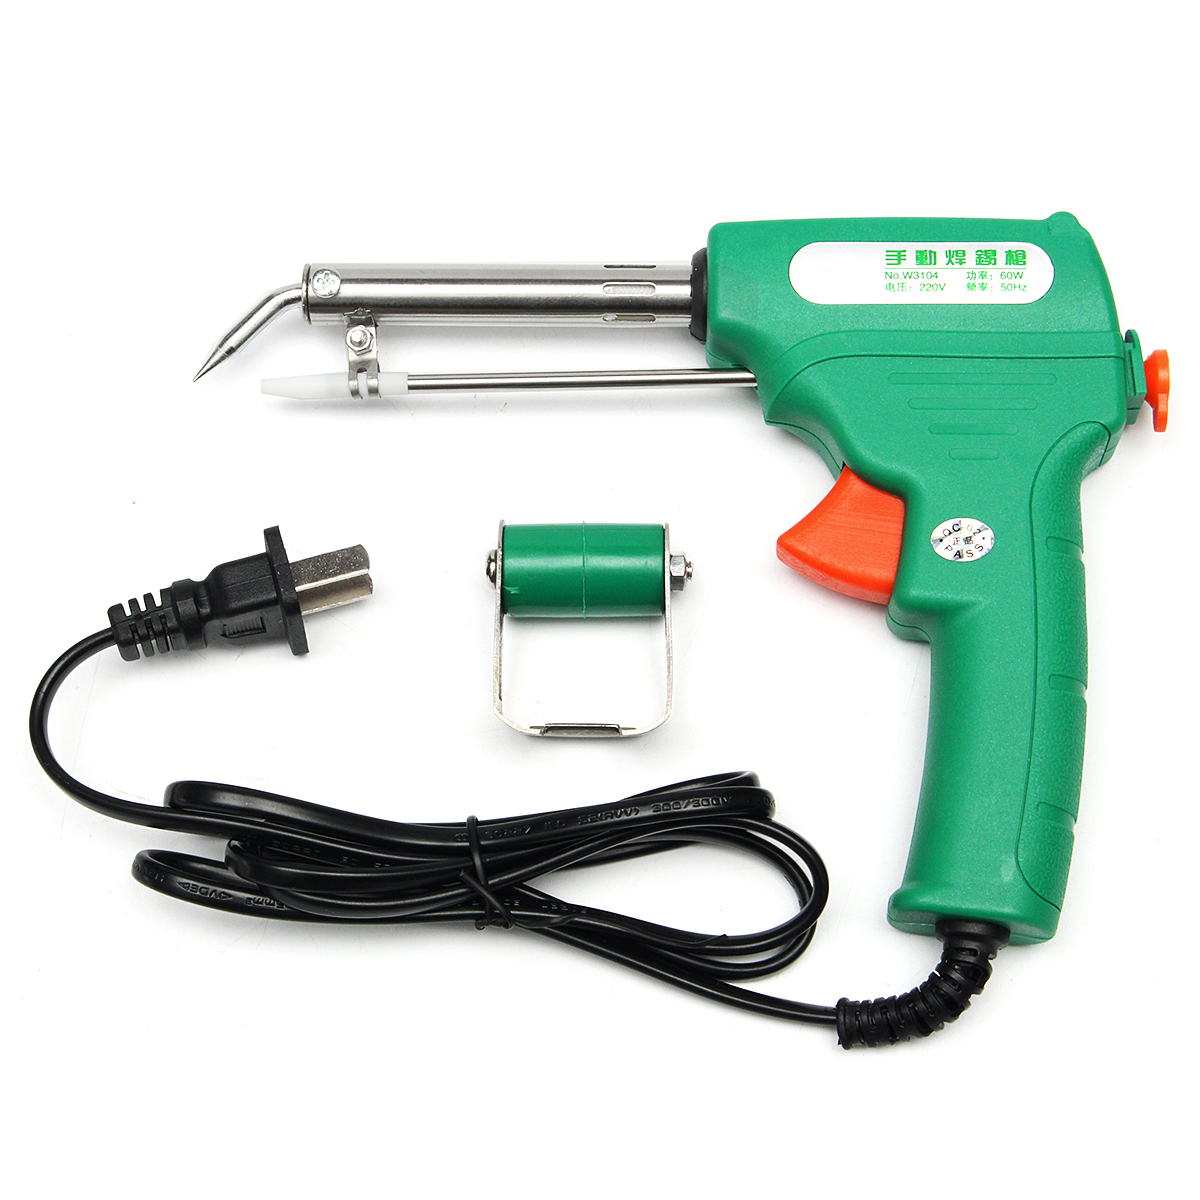 220V 60W Auto Electric Mini Metal Welding Soldering Iron Solder Tool + Tin Stent